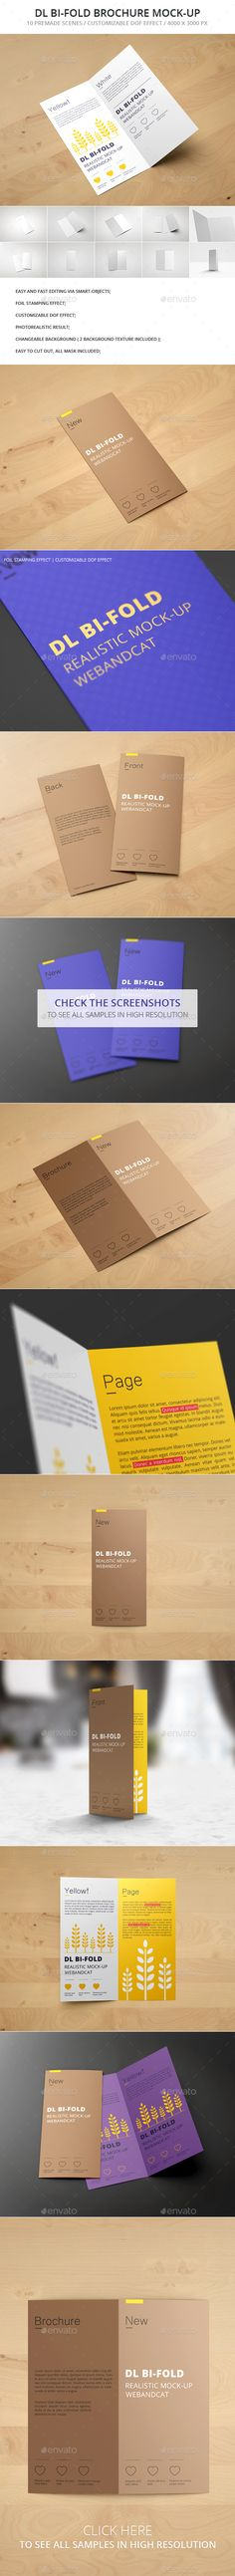 Bi-Fold A5 Brochure - Leaflet Brochures, Template and Http www